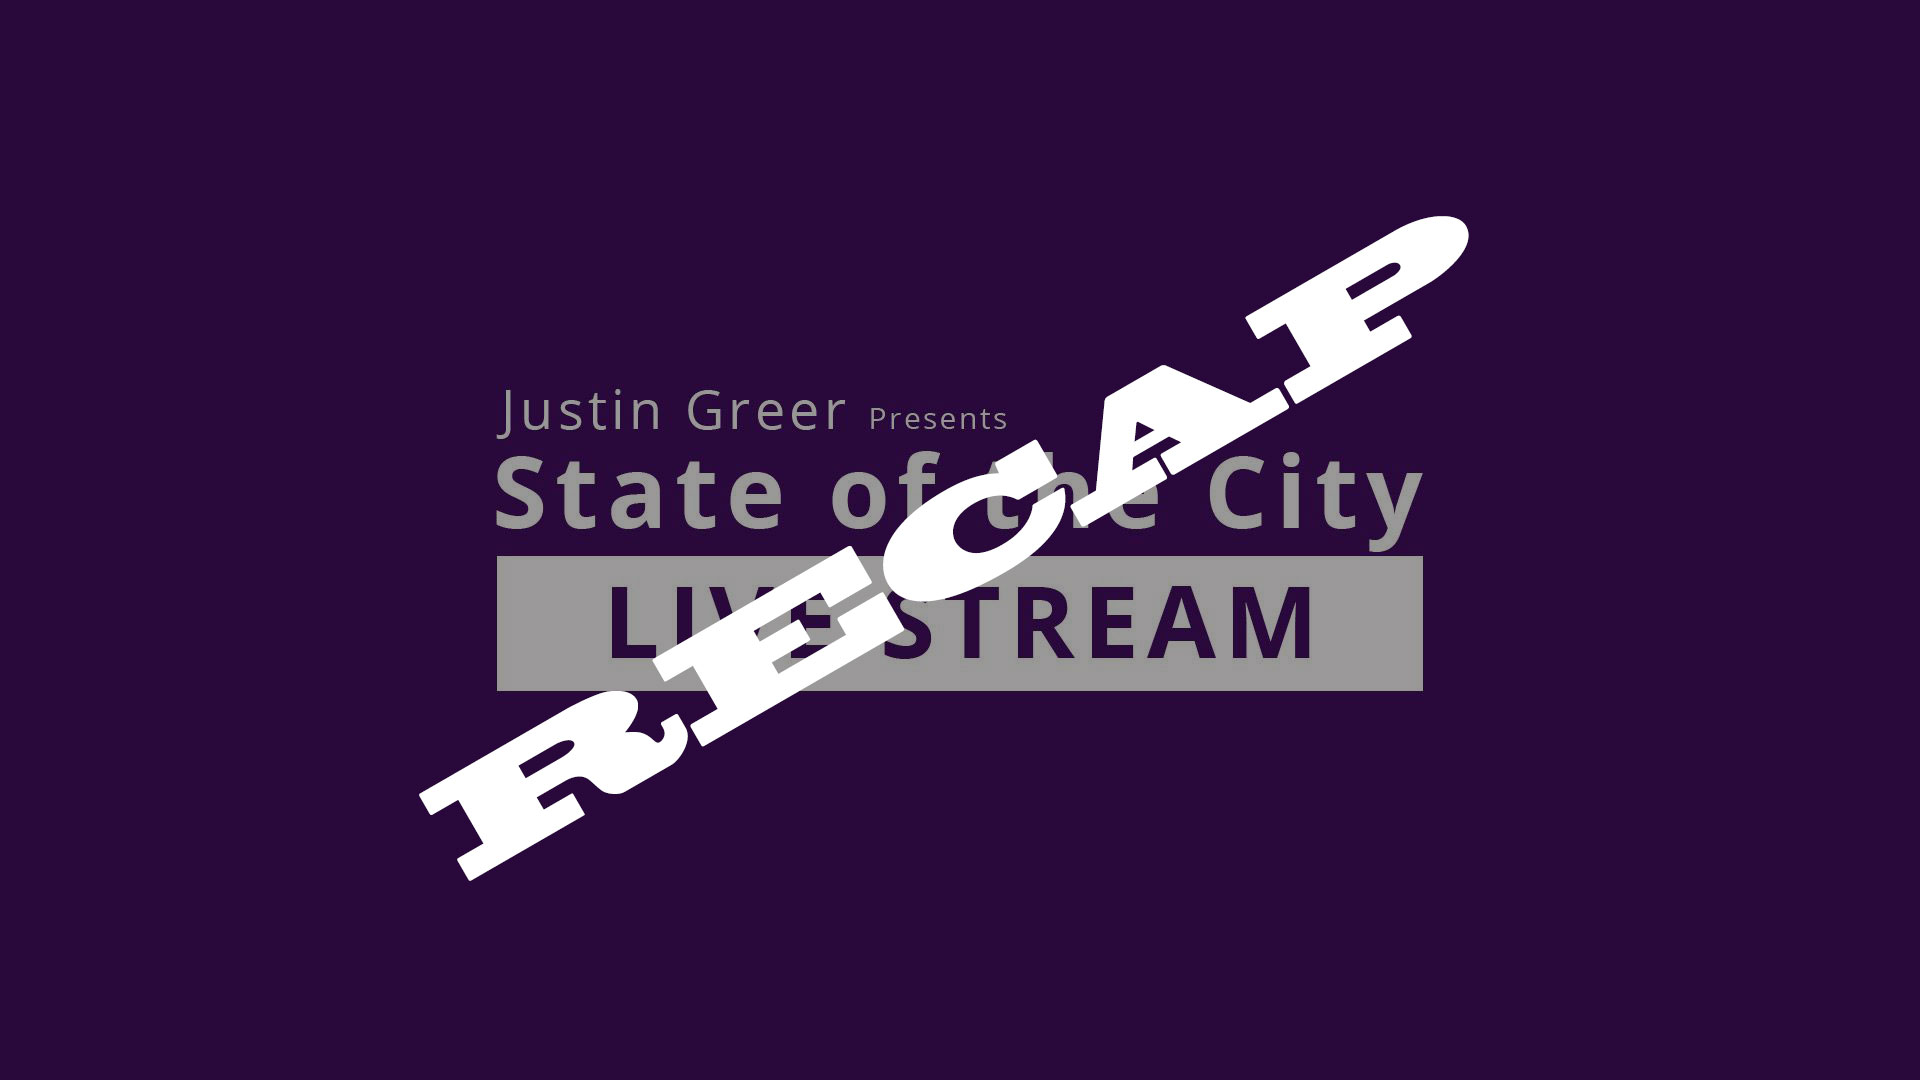 State of the City Recap and Opinions